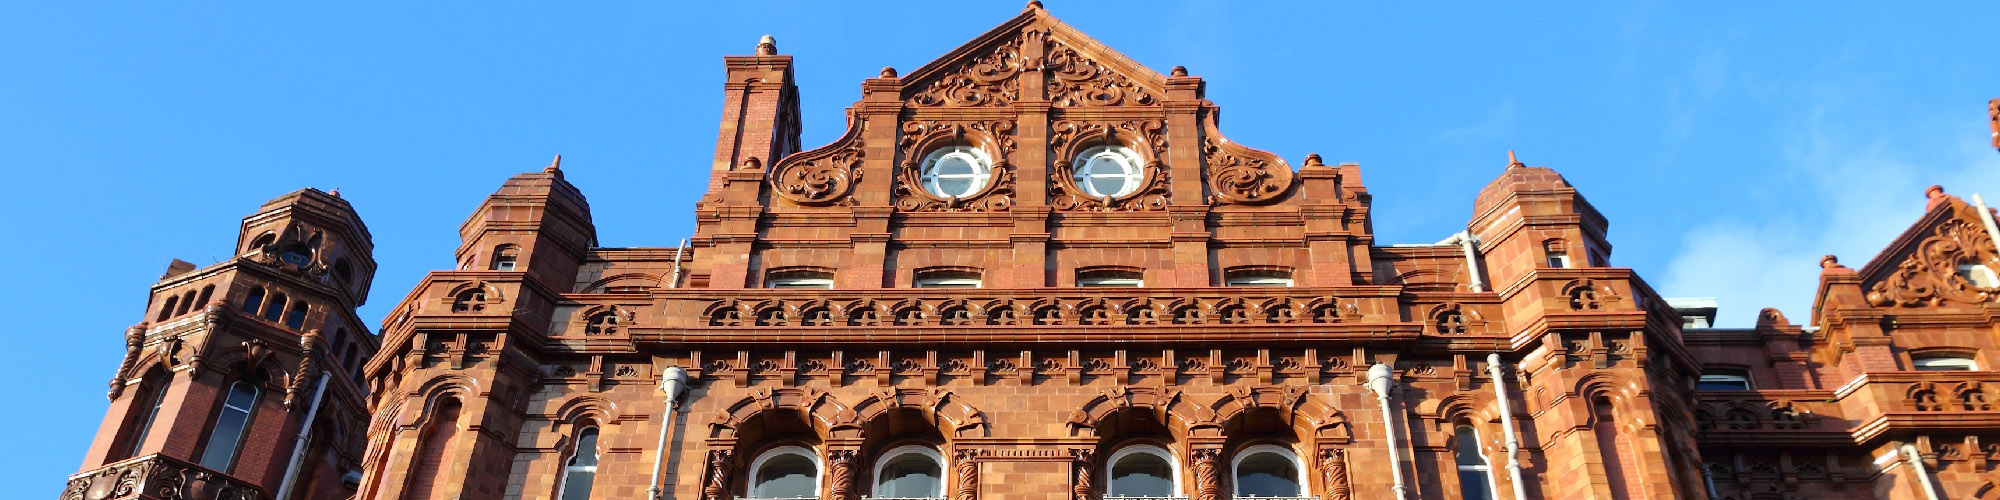 famous eclectic architecture in England